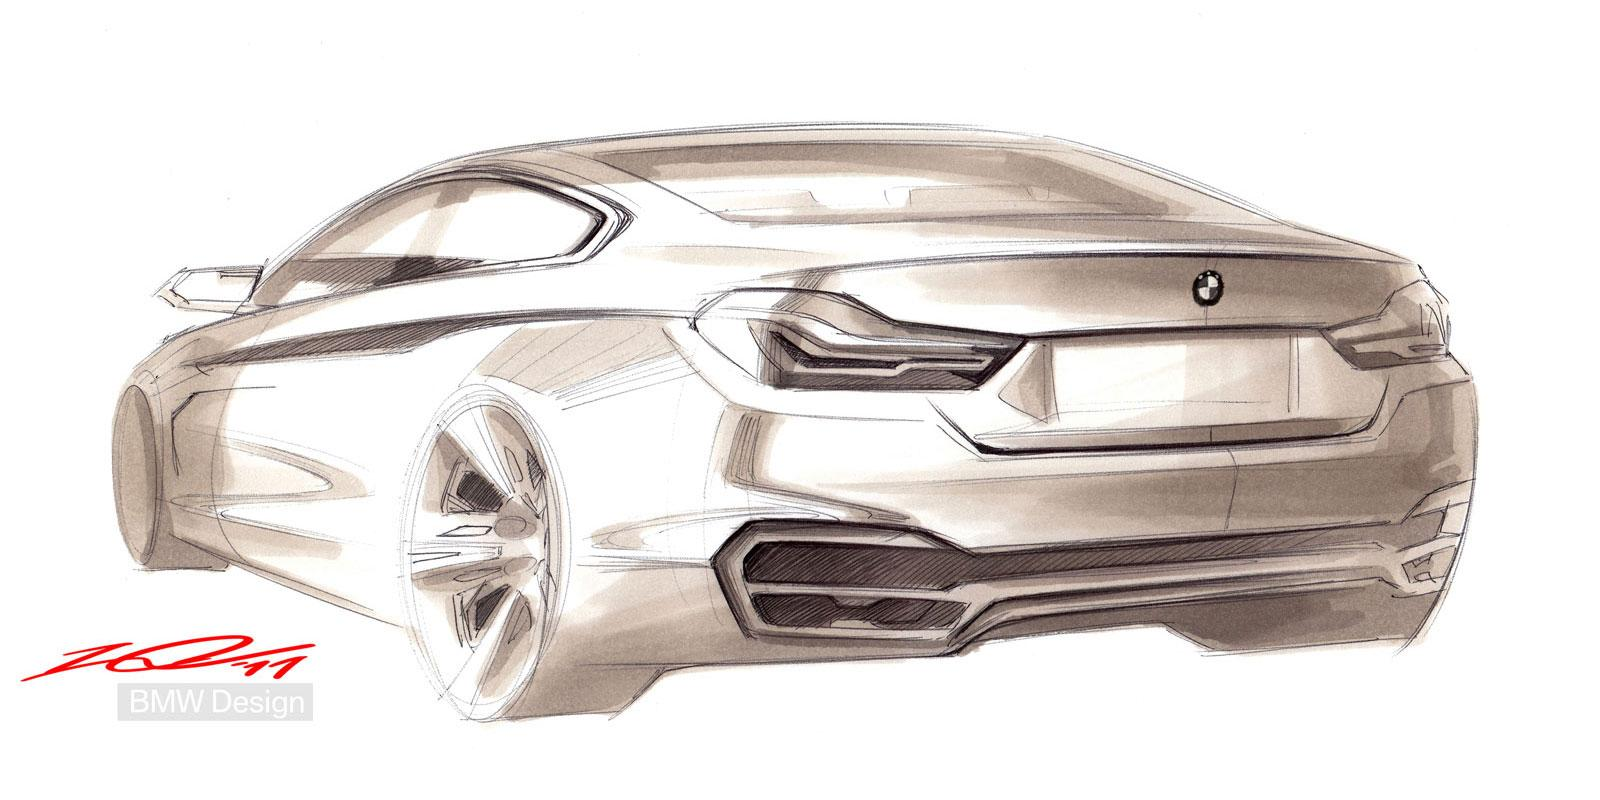 BMW Concept 4 Series Coupe - Design Sketch - Car Body Design #180433 ...: www.wookmark.com/image/180433/bmw-concept-4-series-coupe-design...